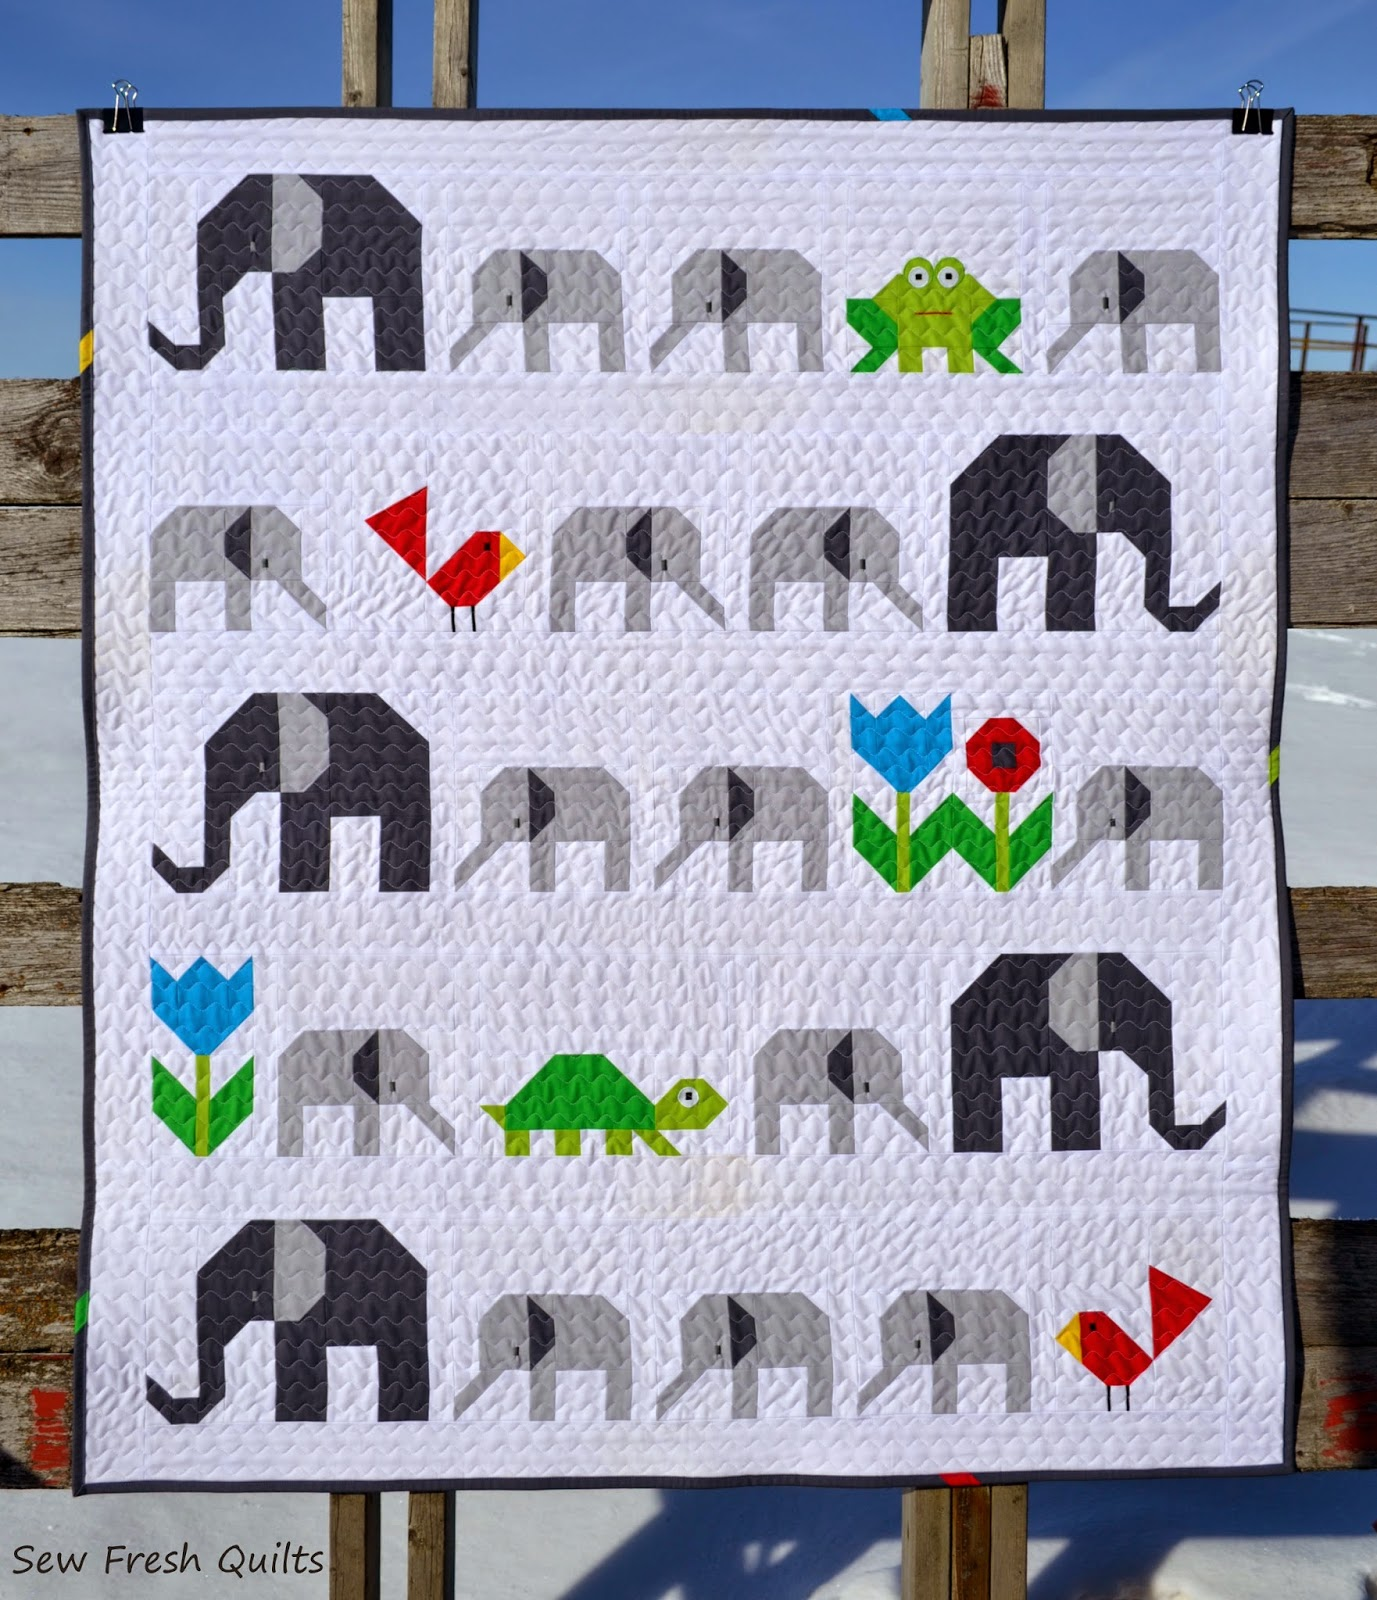 http://sewfreshquilts.blogspot.ca/2015/01/elephant-parade.html